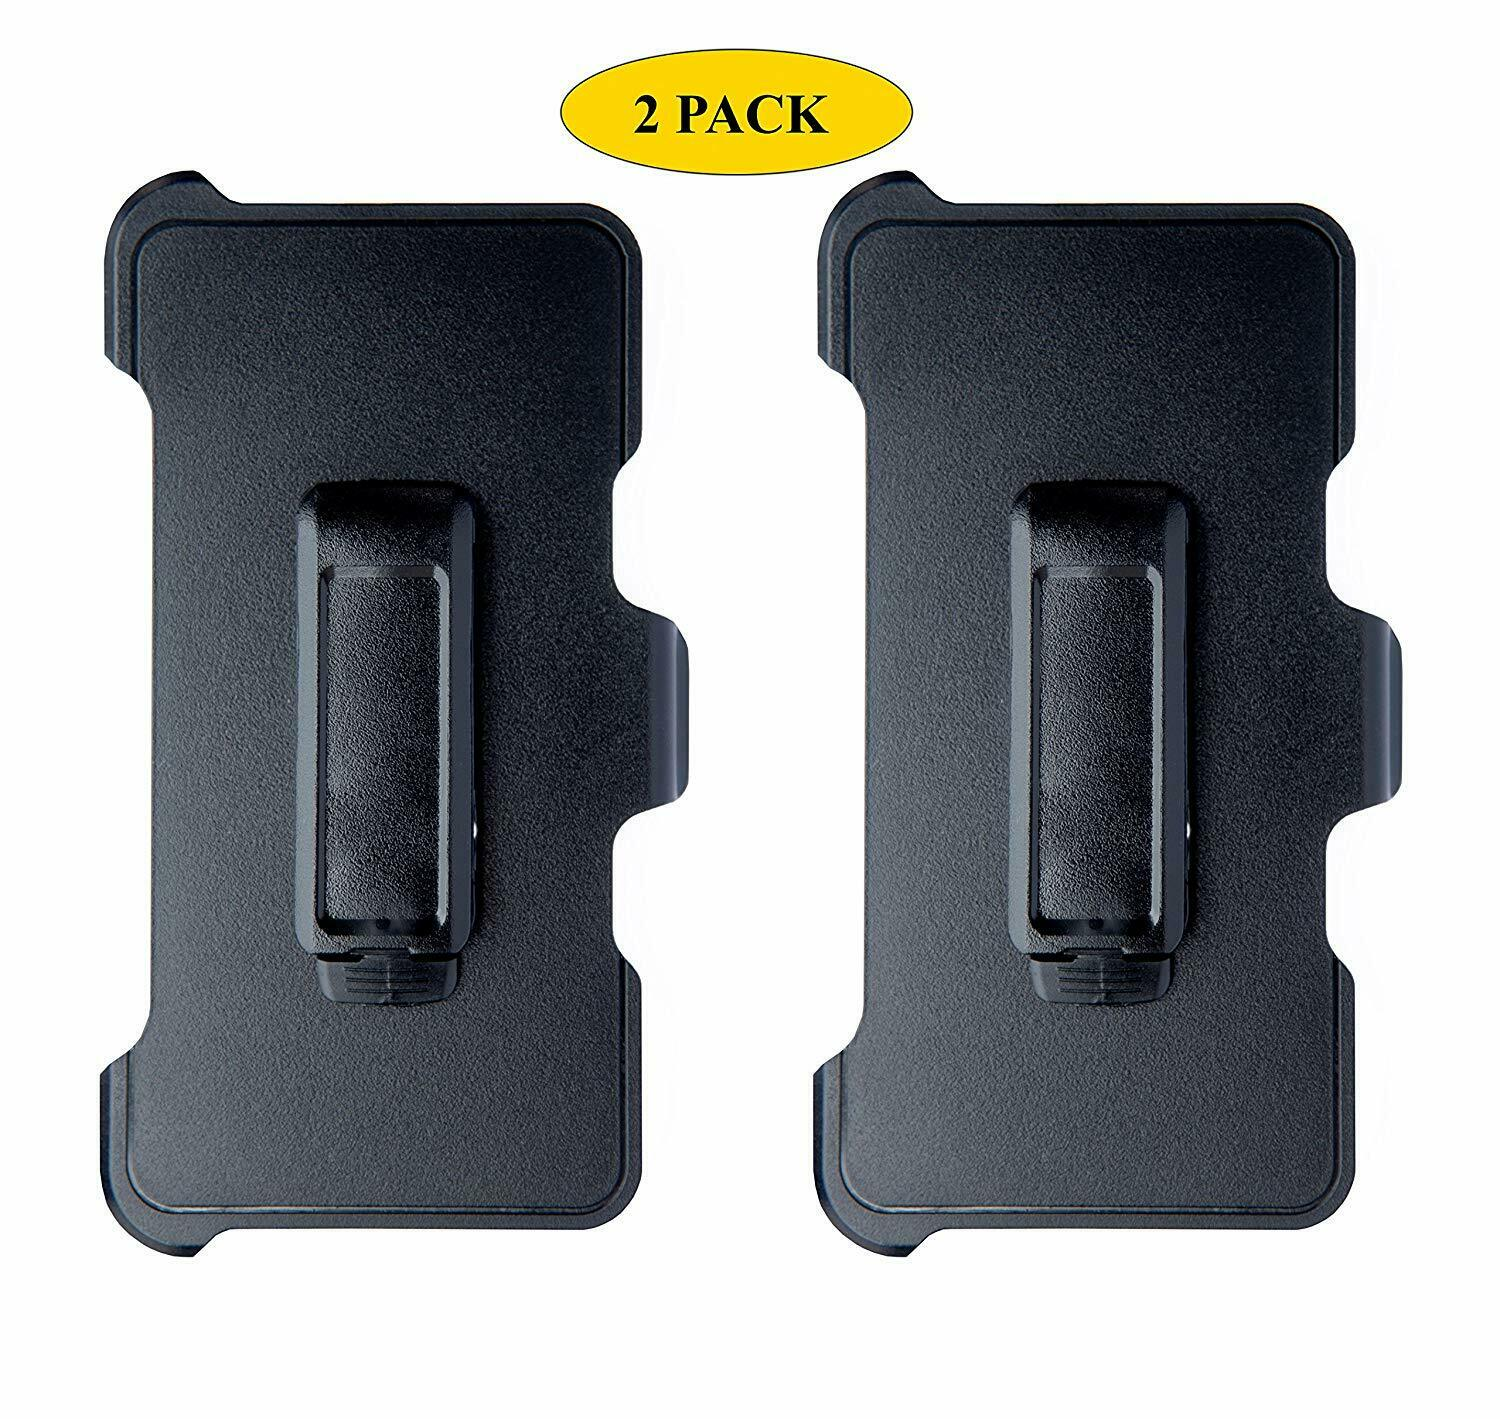 2-Pack Belt Clip Replacement Holster Compatible Otterbox Defender Series iPhone Cases, Covers & Skins